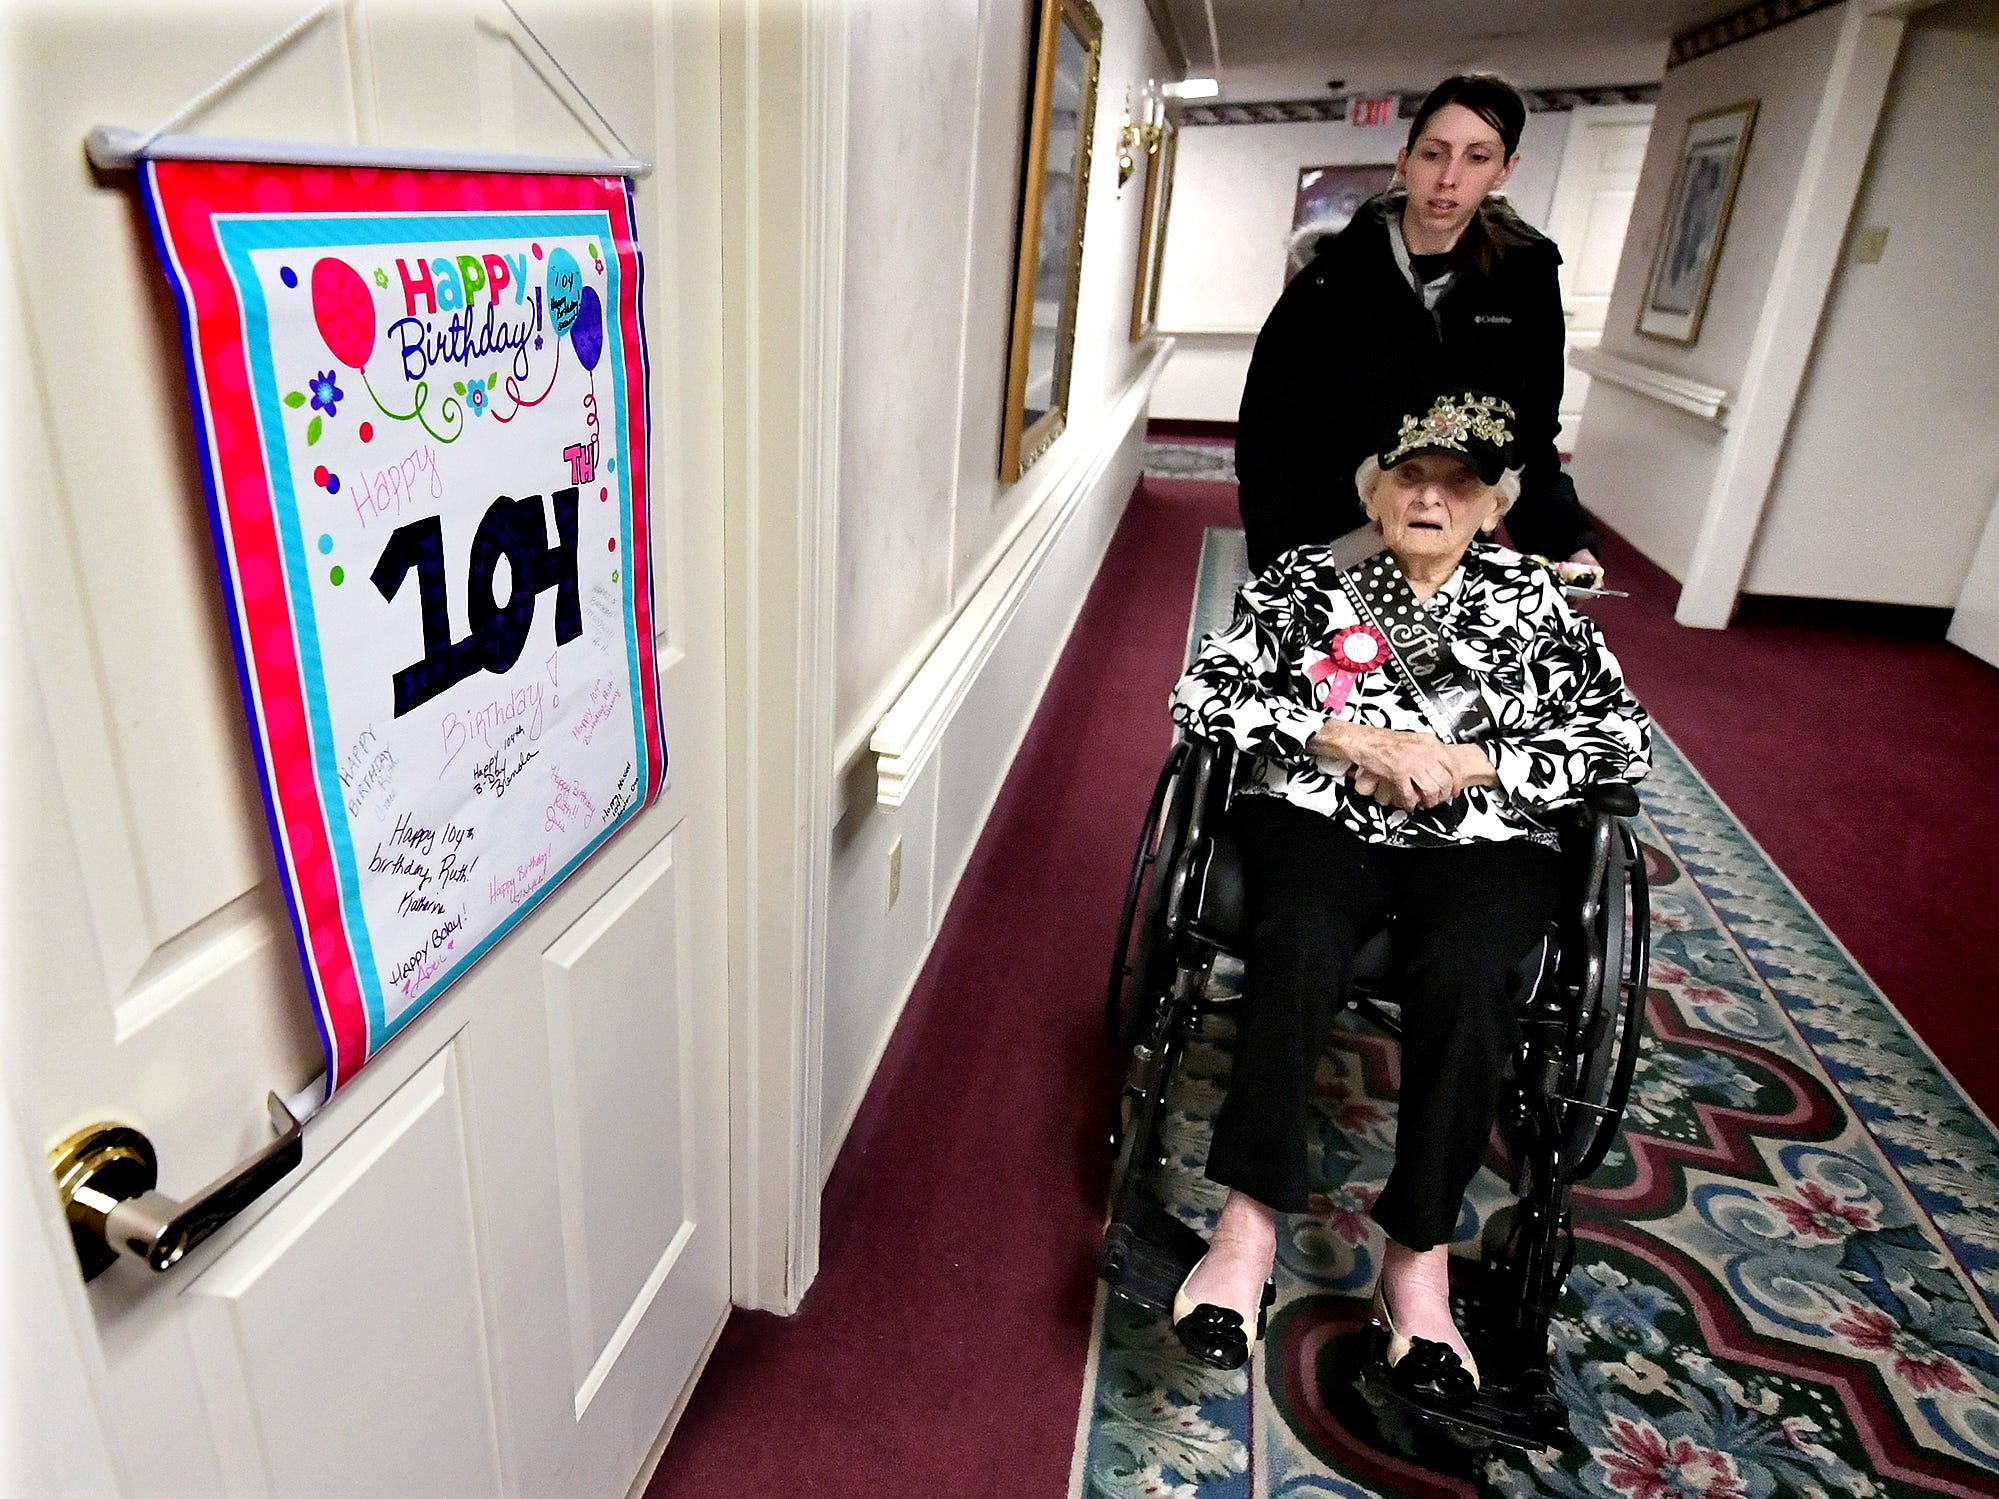 Memorial White Rose Home Health and Hospice aide Brittany Hare takes Ruth Kohler back to her room after Ruth's 104th birthday celebration at Senior Commons at Powder Mill where Ruth is a resident Friday, Feb. 1, 2019. According to Senior Commons staff, she is the oldest resident to have lived there. Bill Kalina photo